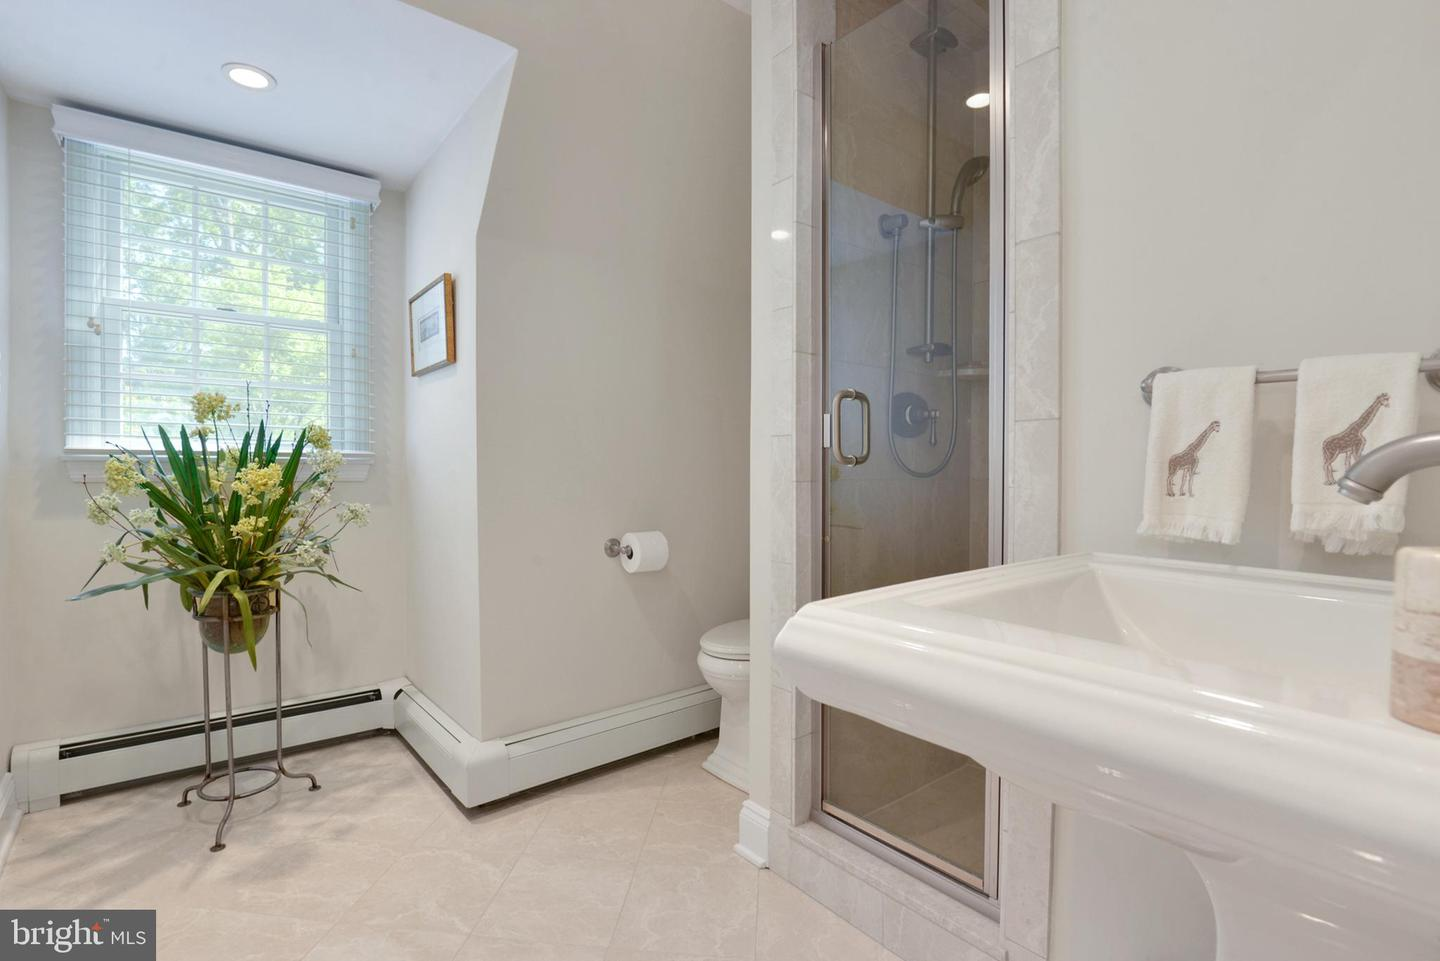 Edison, New Jersey, United States Luxury Real Estate - Homes